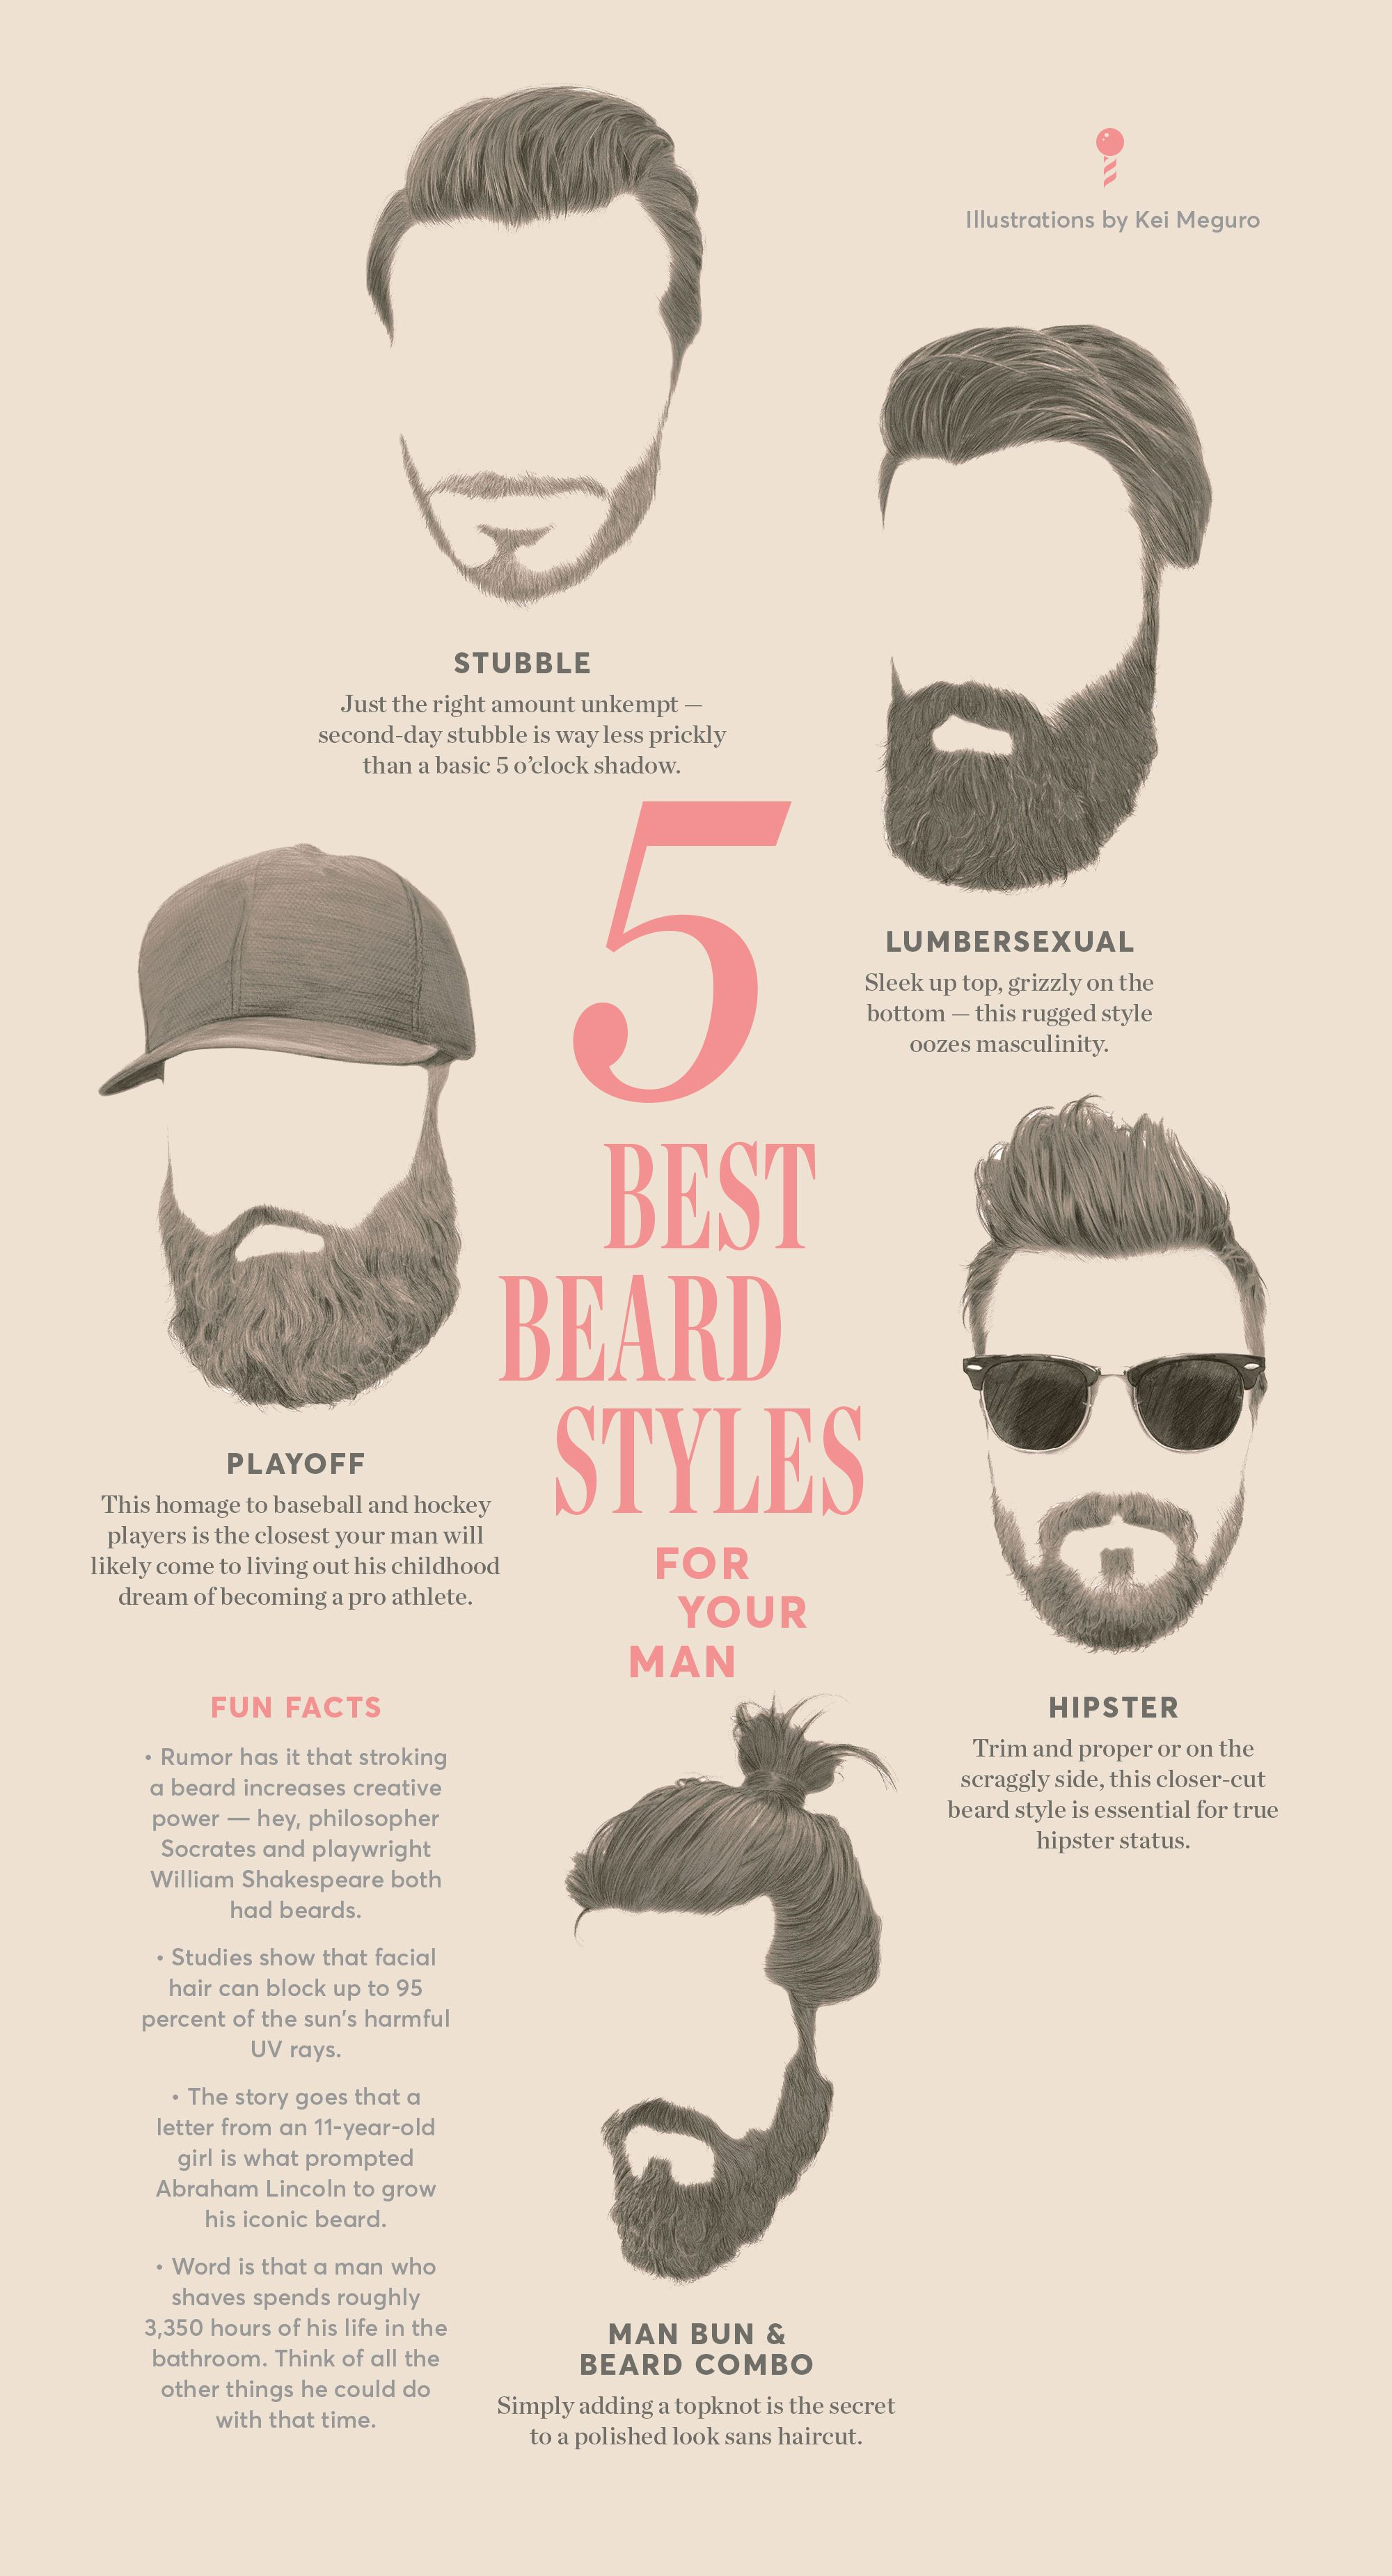 Hot Beard Styles For Your Man Beard Styles Movember And - Guy shapes beard fun creative designs